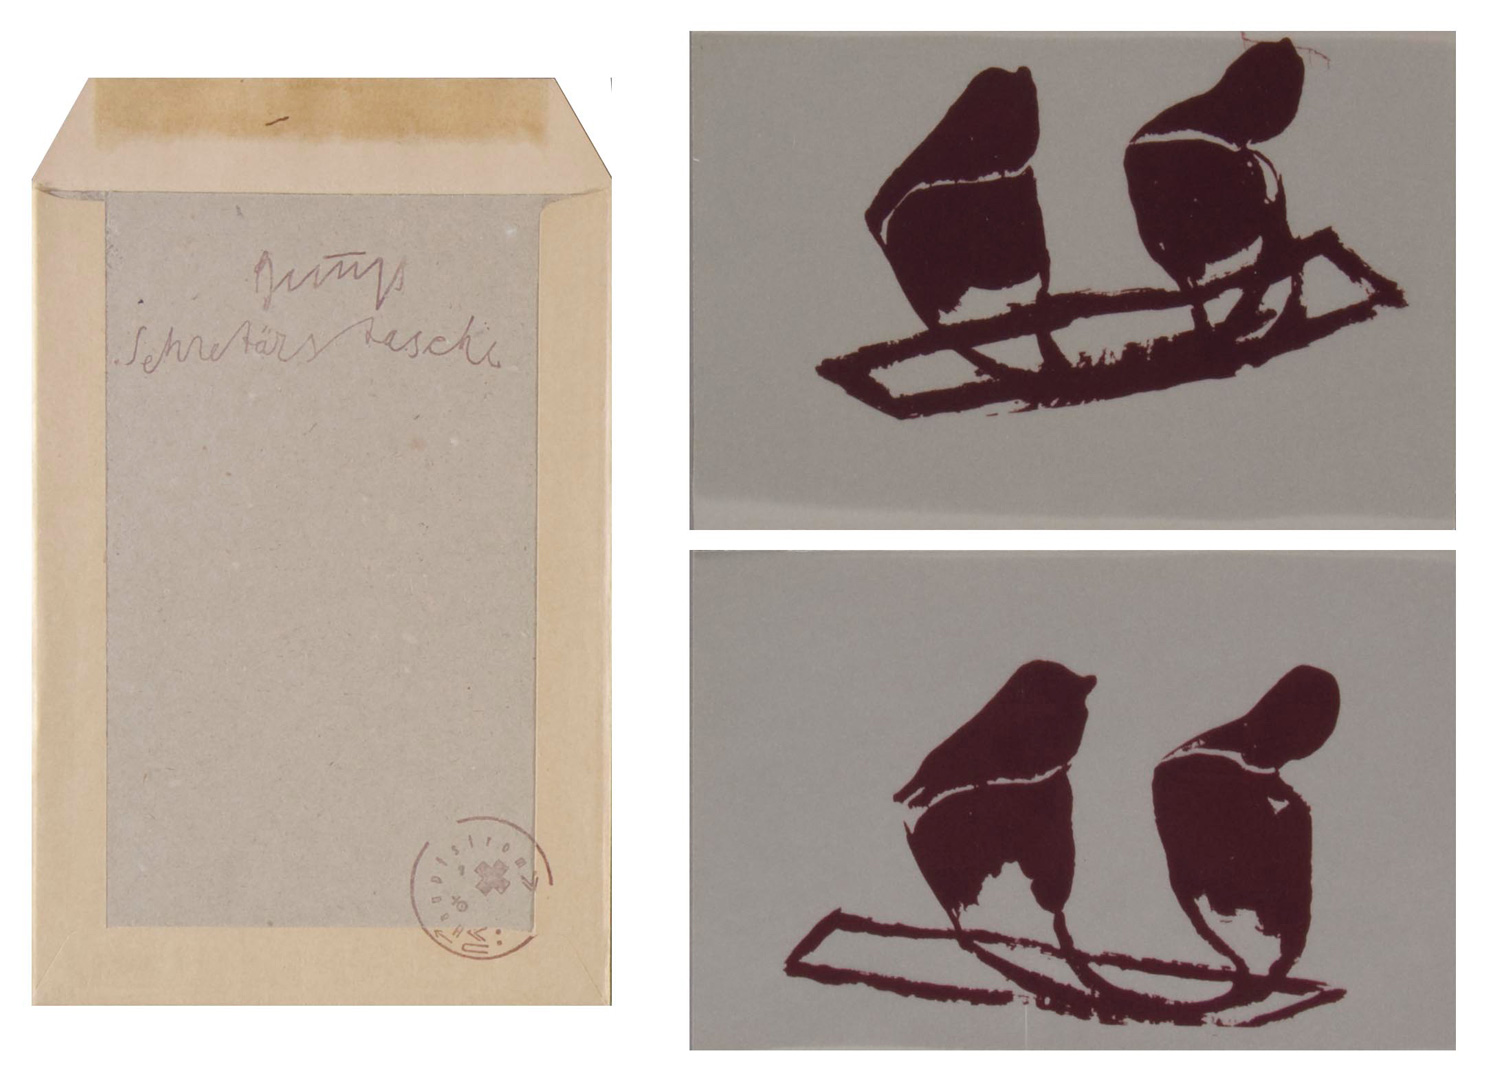 Joseph Beuys - Sekretärstasche, 1981, mailing envelope, stamped, prints on plastic sheet mounted in book